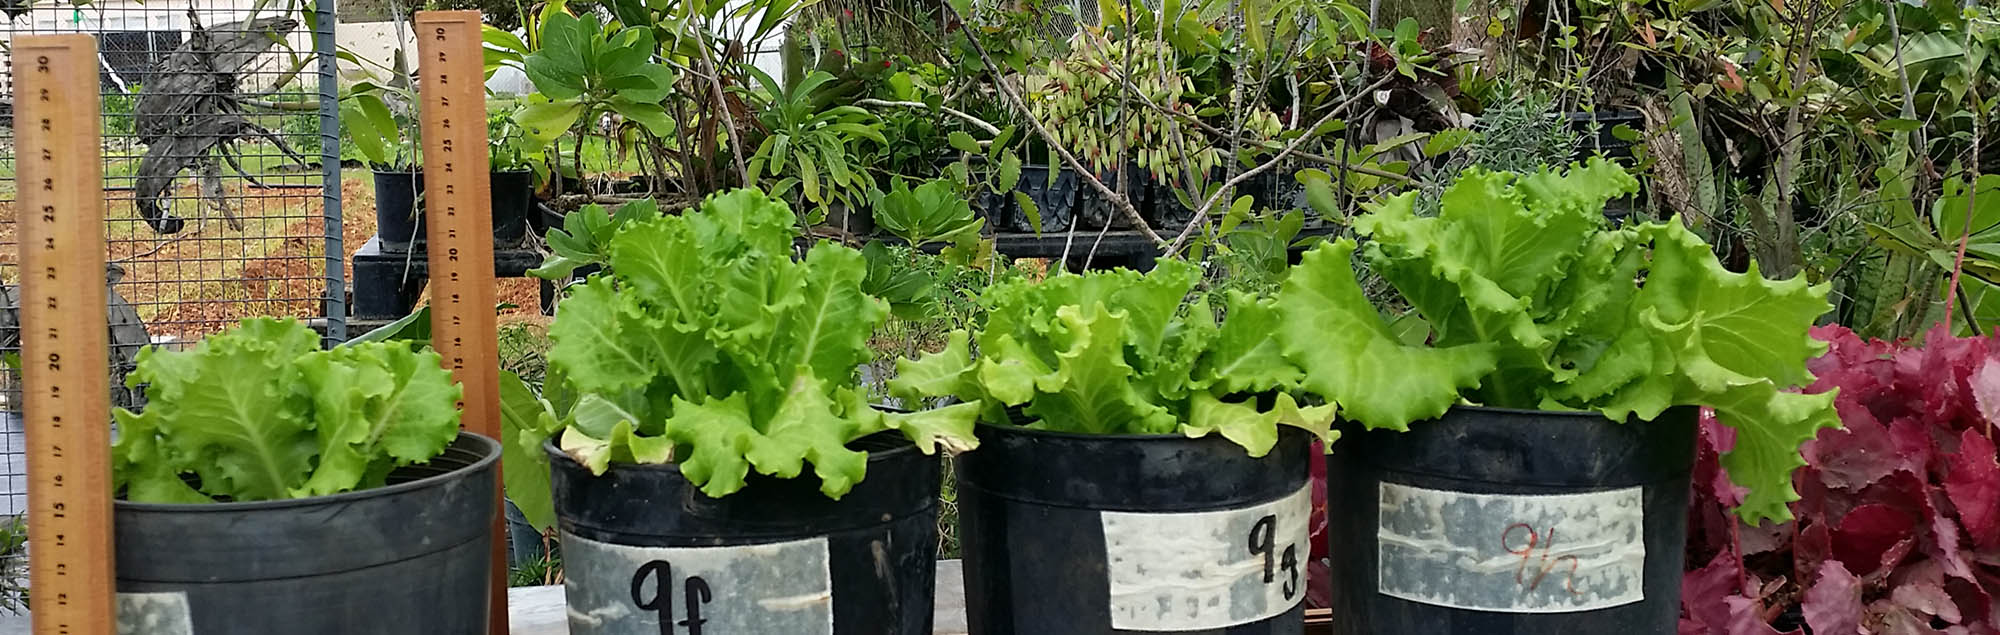 Lettuce trials